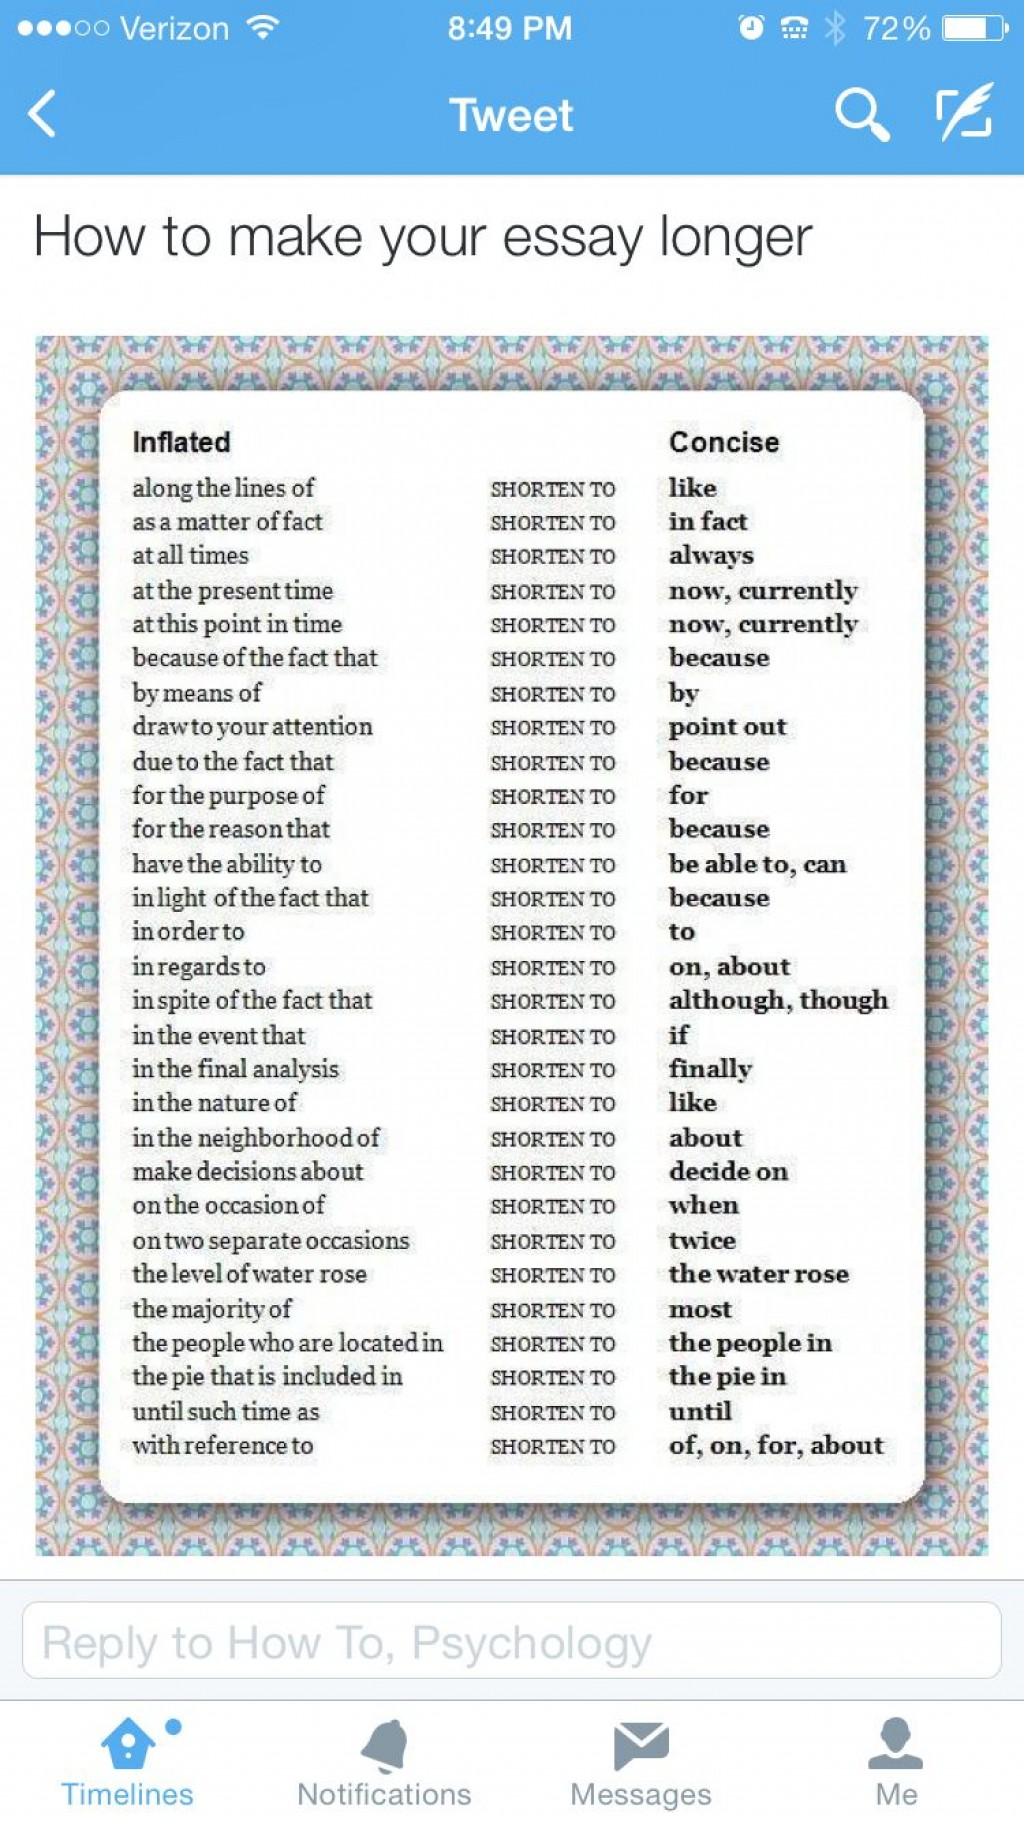 004 How To Make An Essay Longer Example Unusual Word Count With Periods Period Trick Google Docs Large